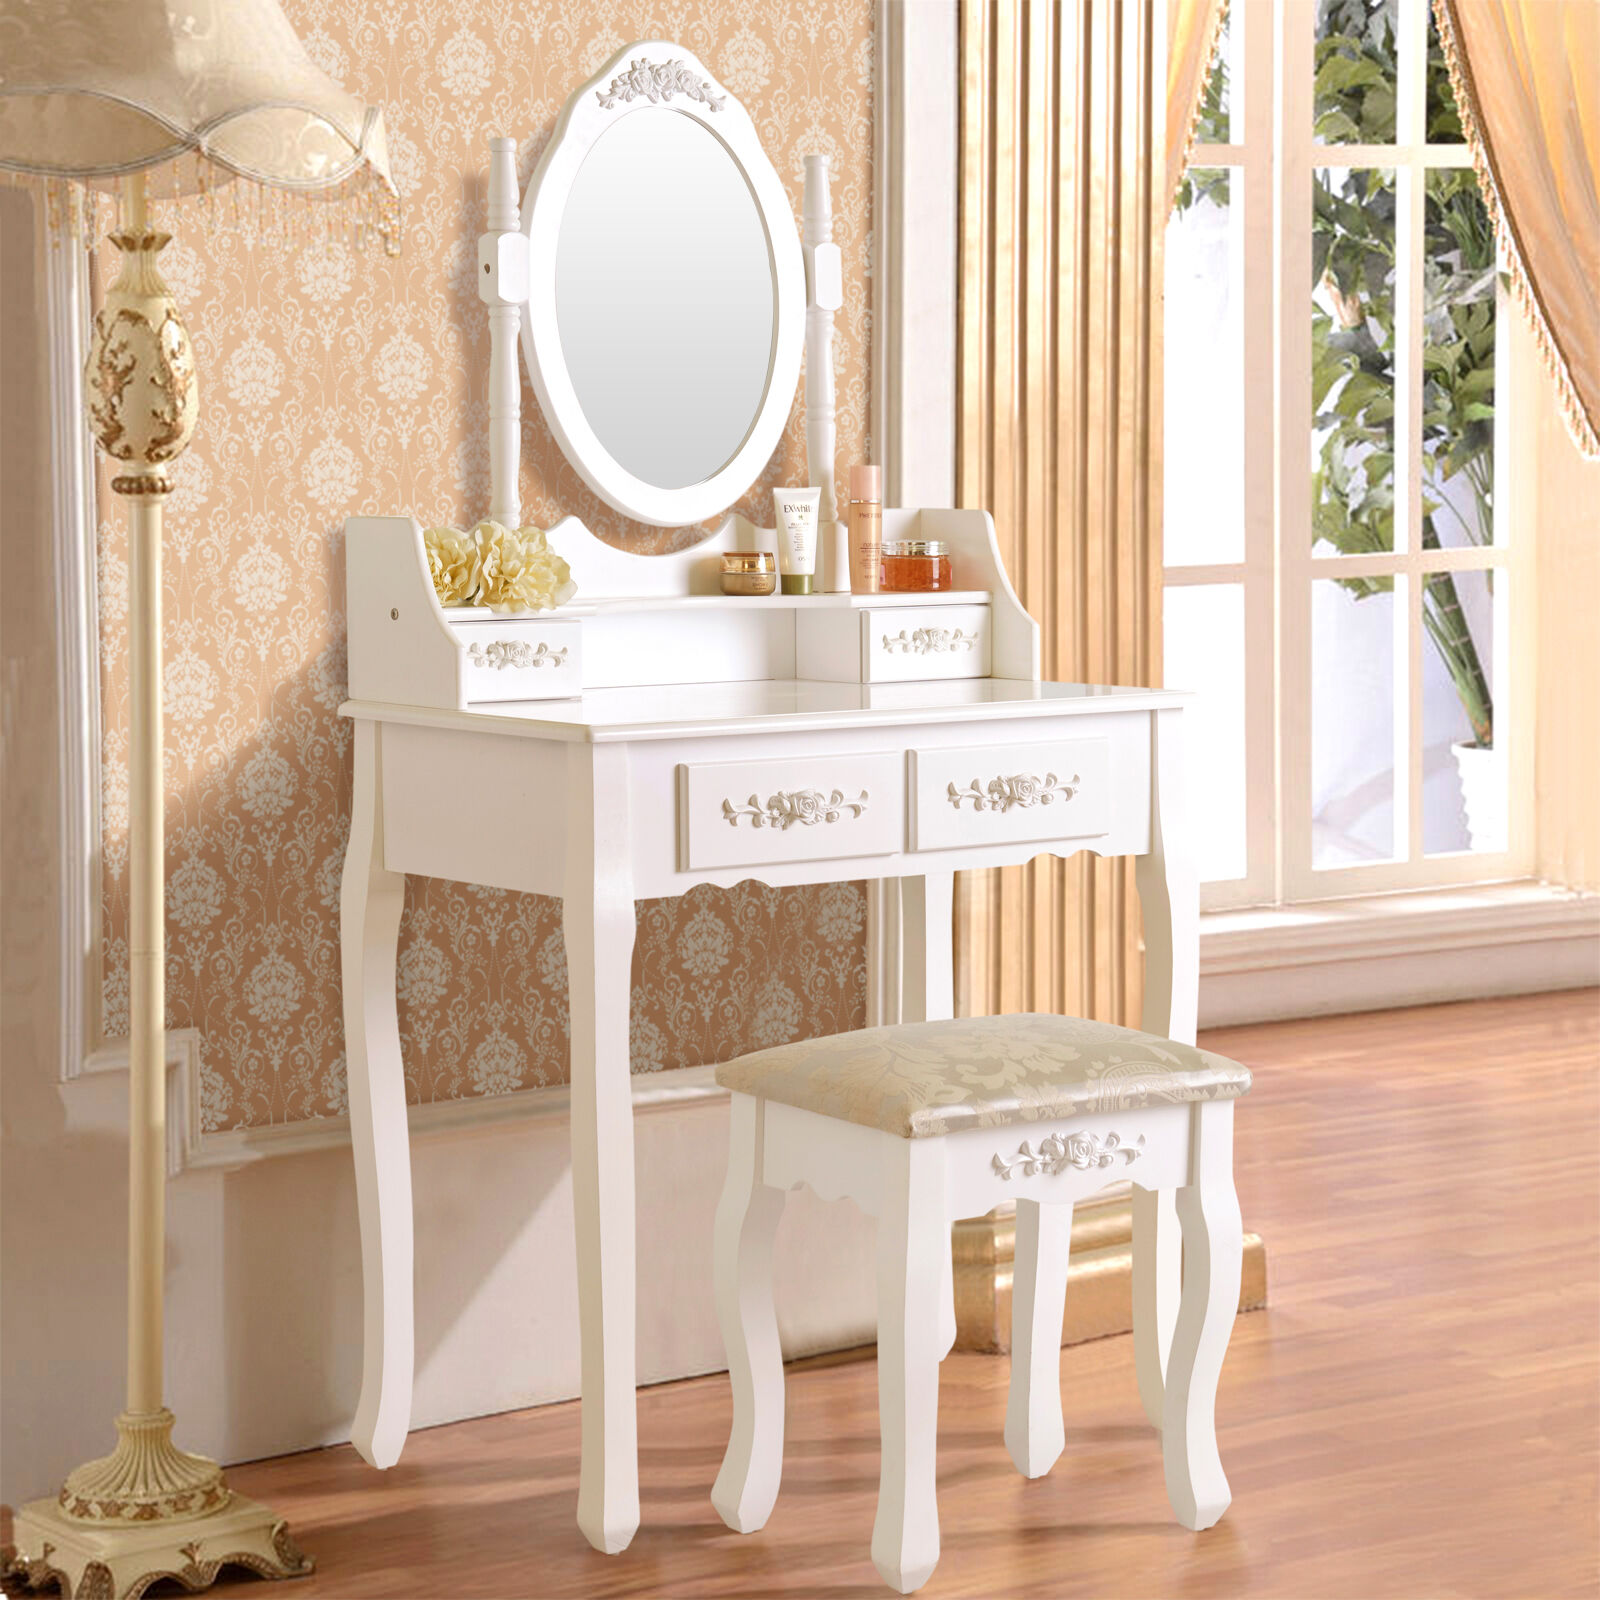 Vanity set ebay white vanity makeup dressing table set wstool 4 drawer mirror wood desk geotapseo Image collections